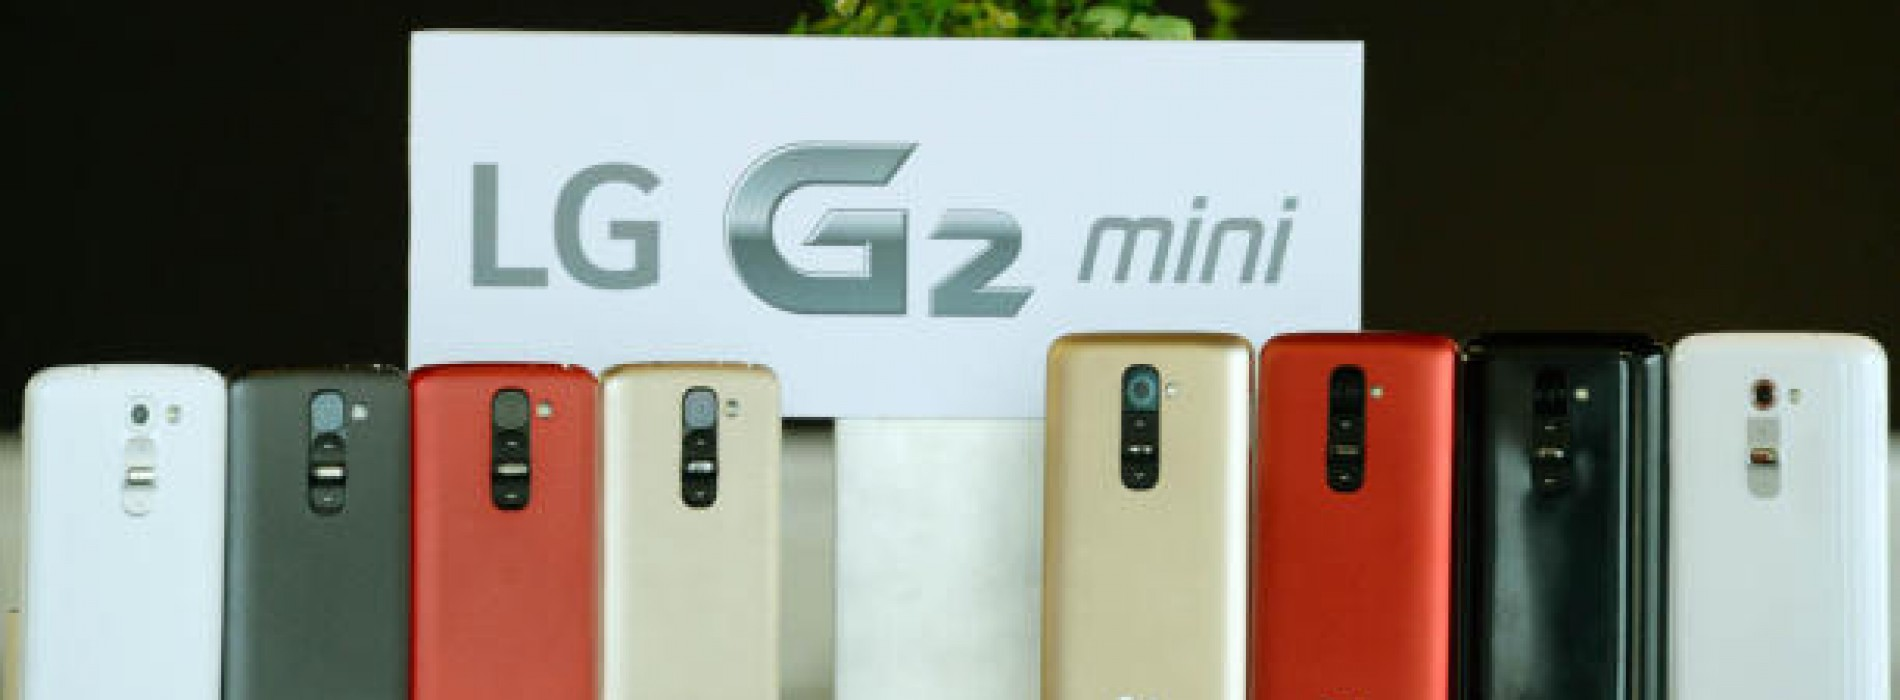 (UPDATE) LG announces the G2 mini ahead of MWC launch date